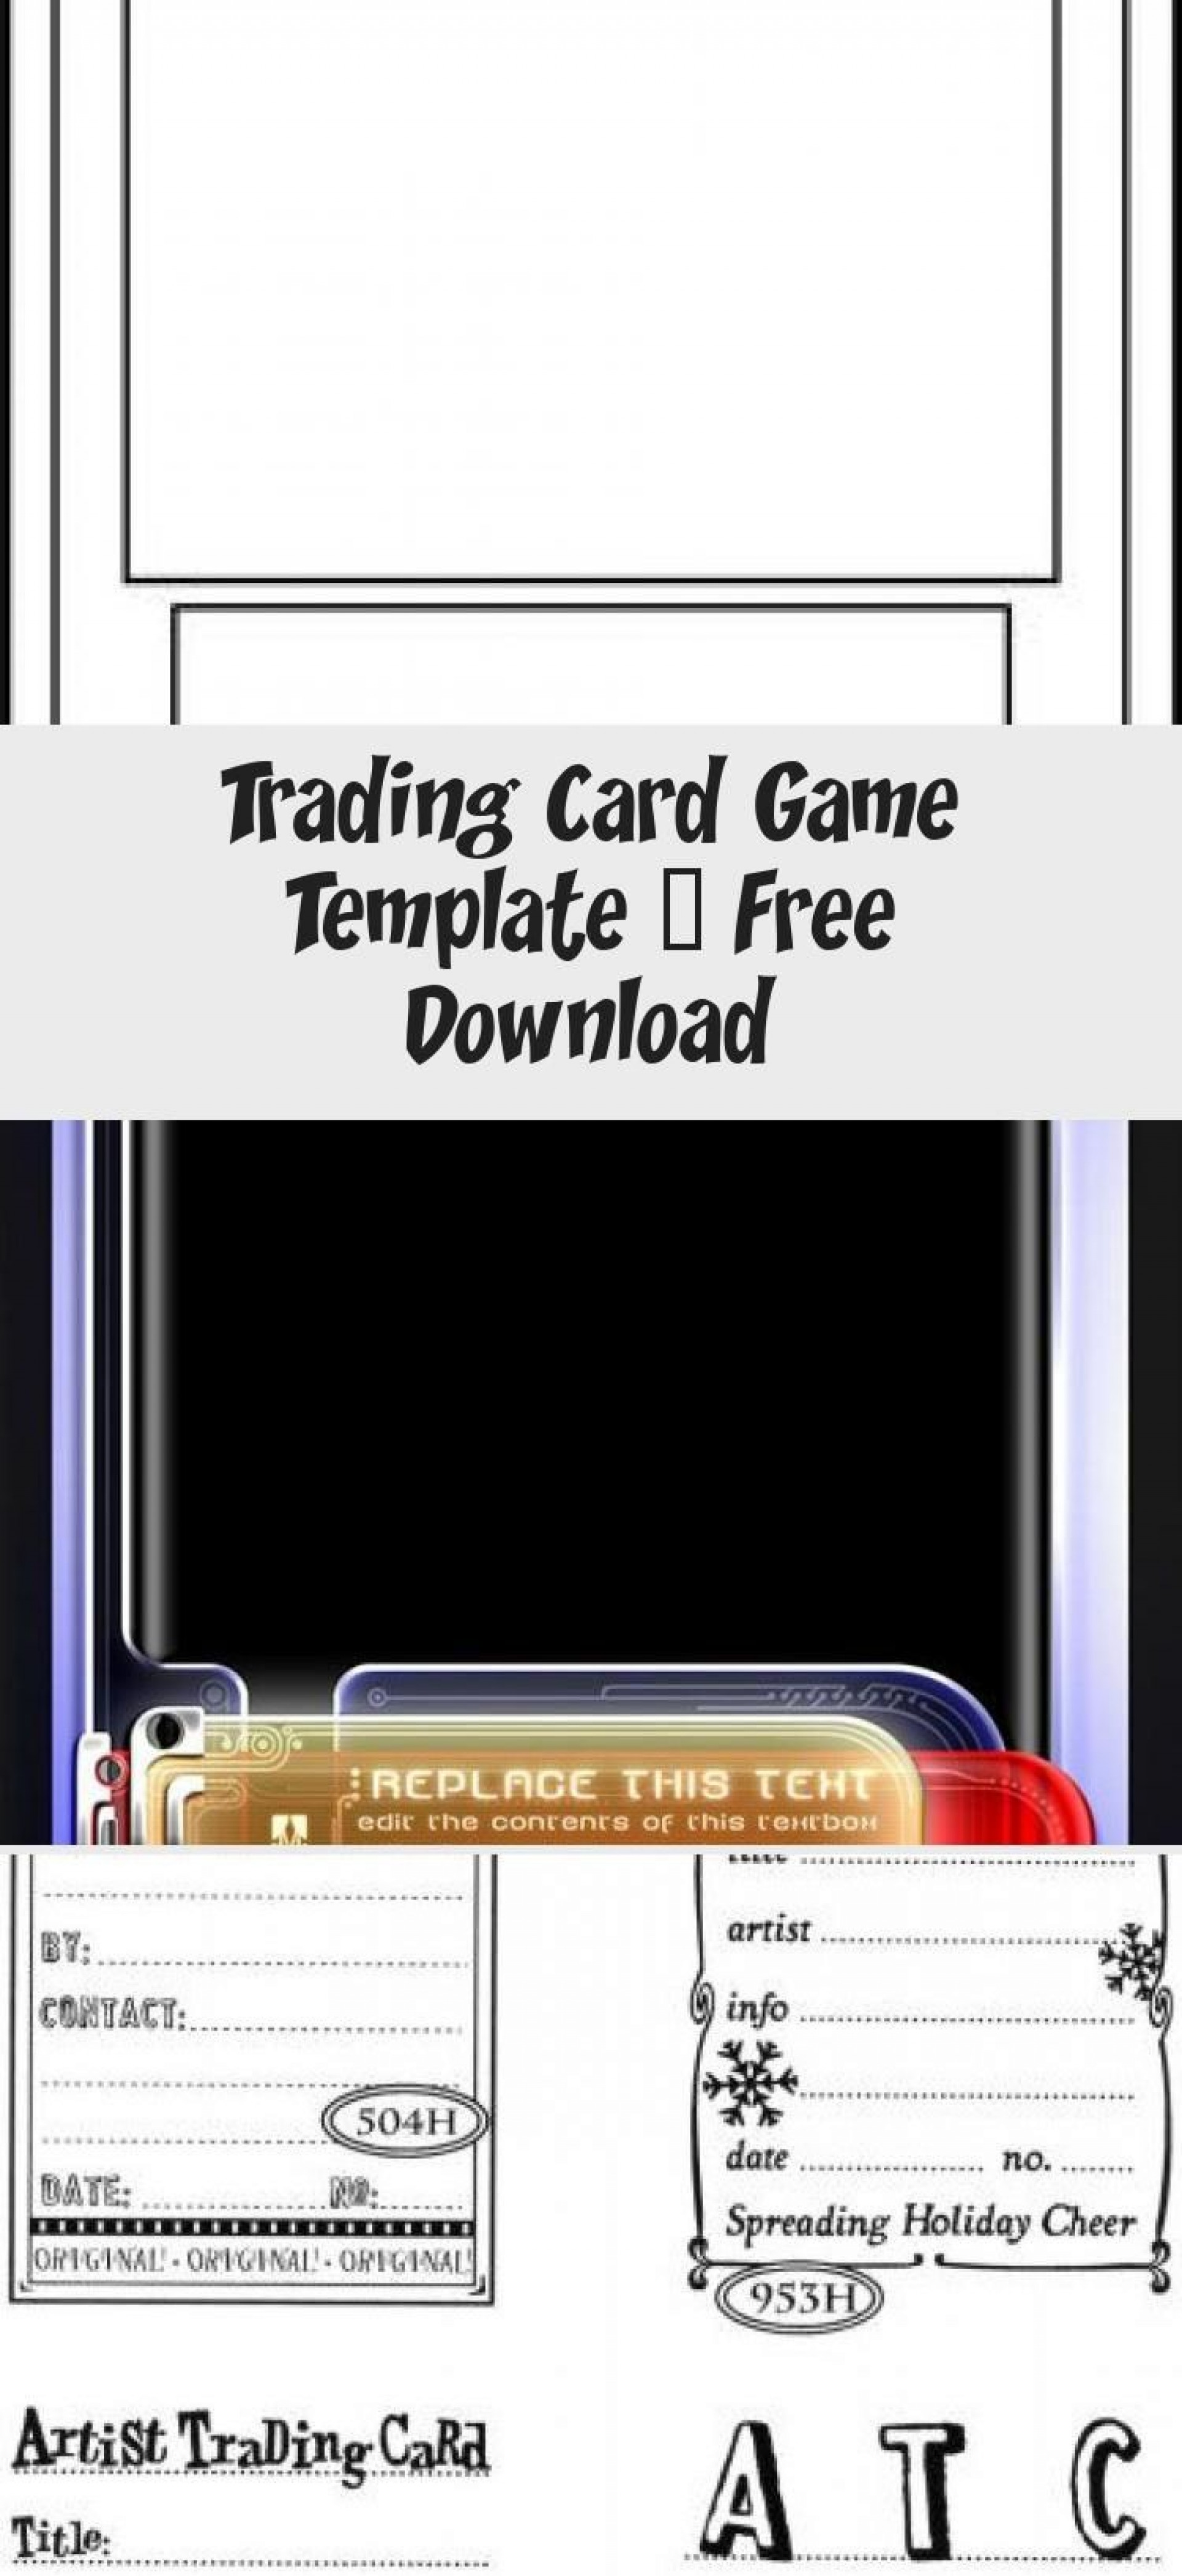 001 Formidable Trading Card Template Free Concept  Maker Online1920